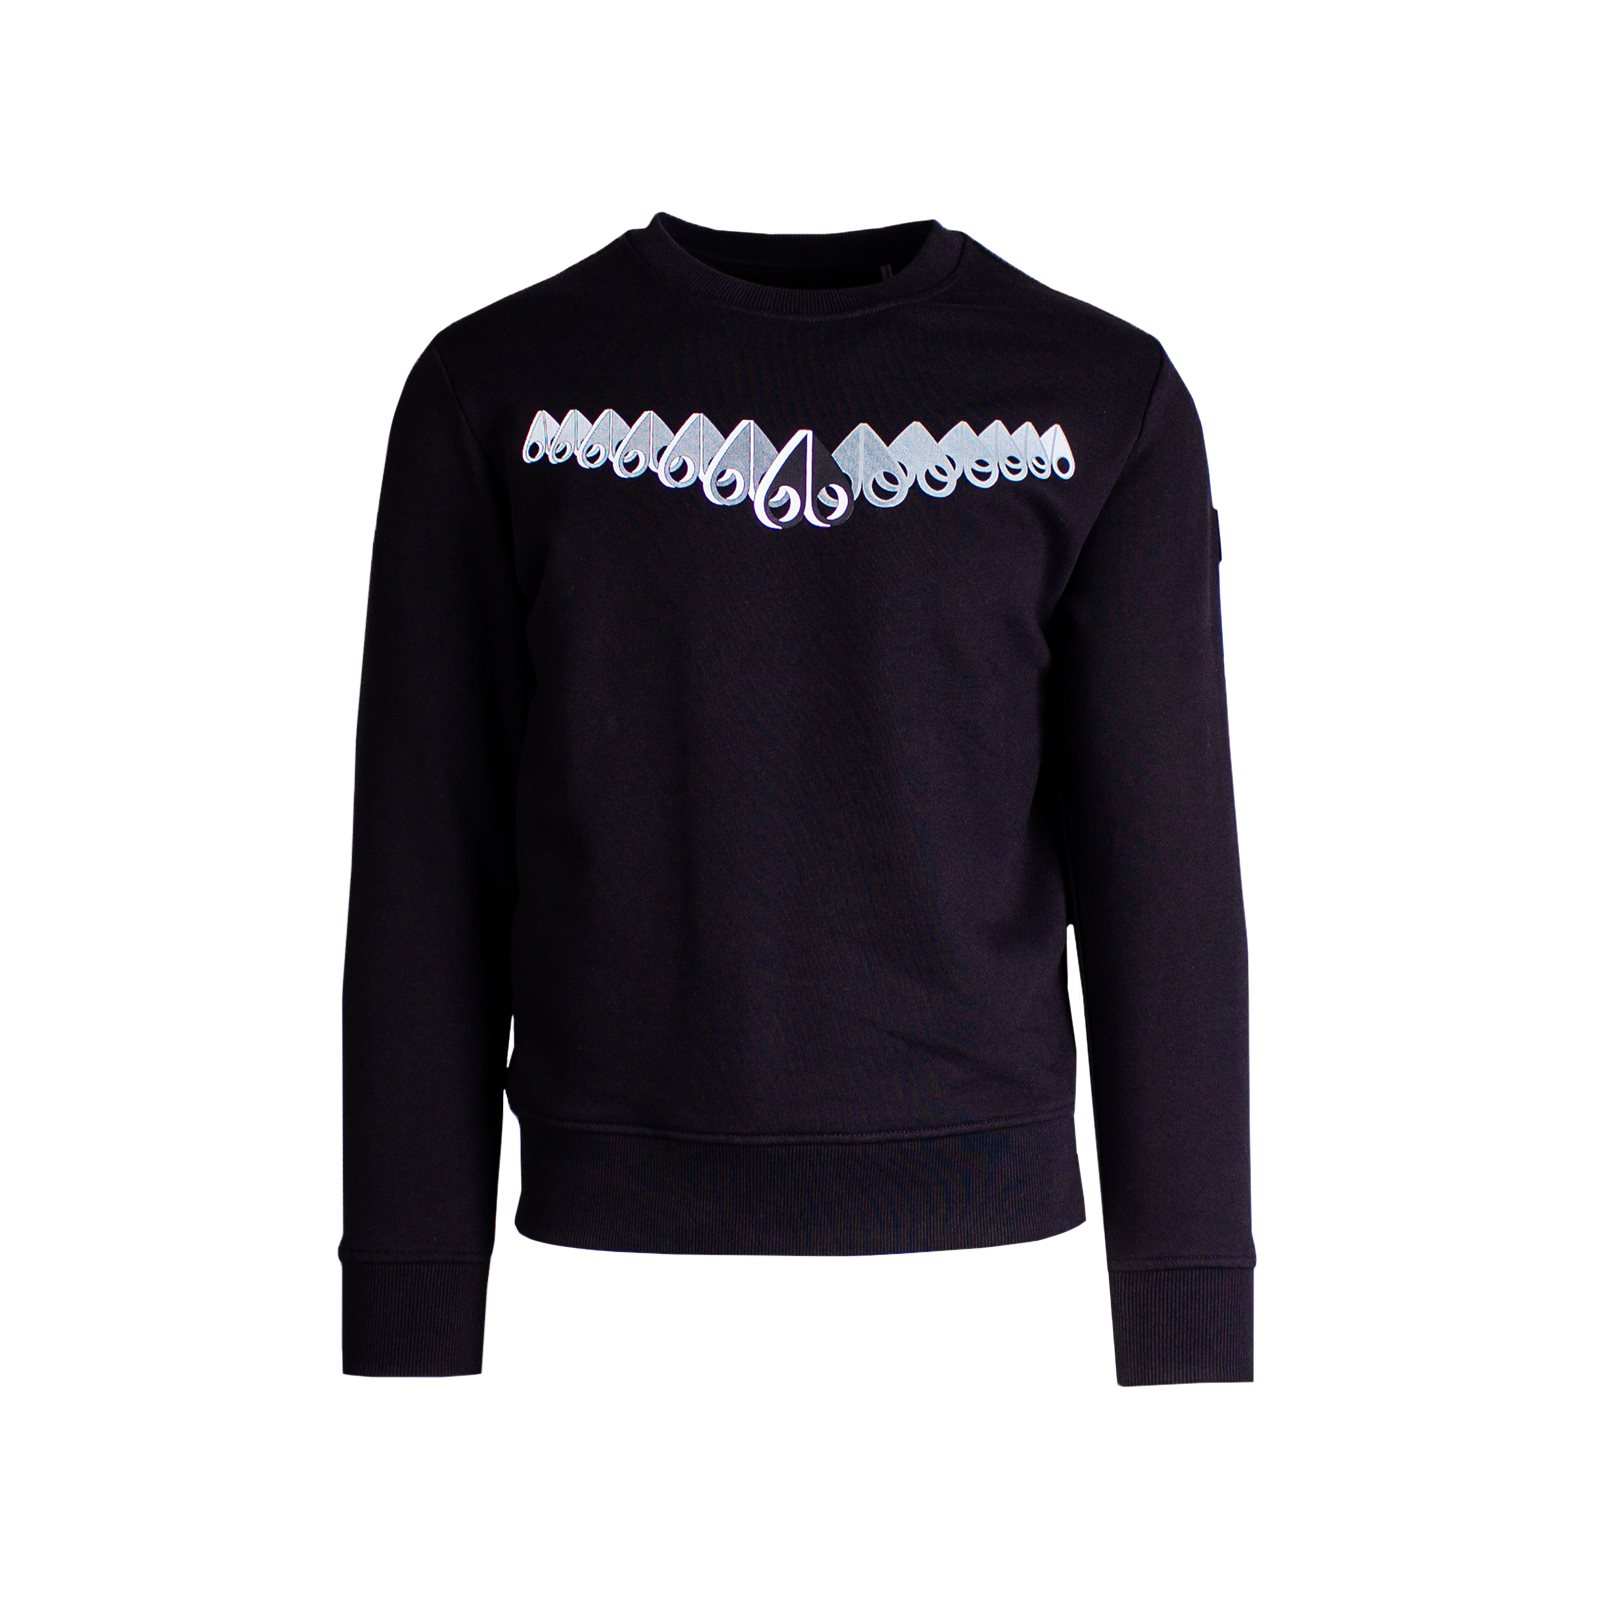 Moose Knuckles Sweater